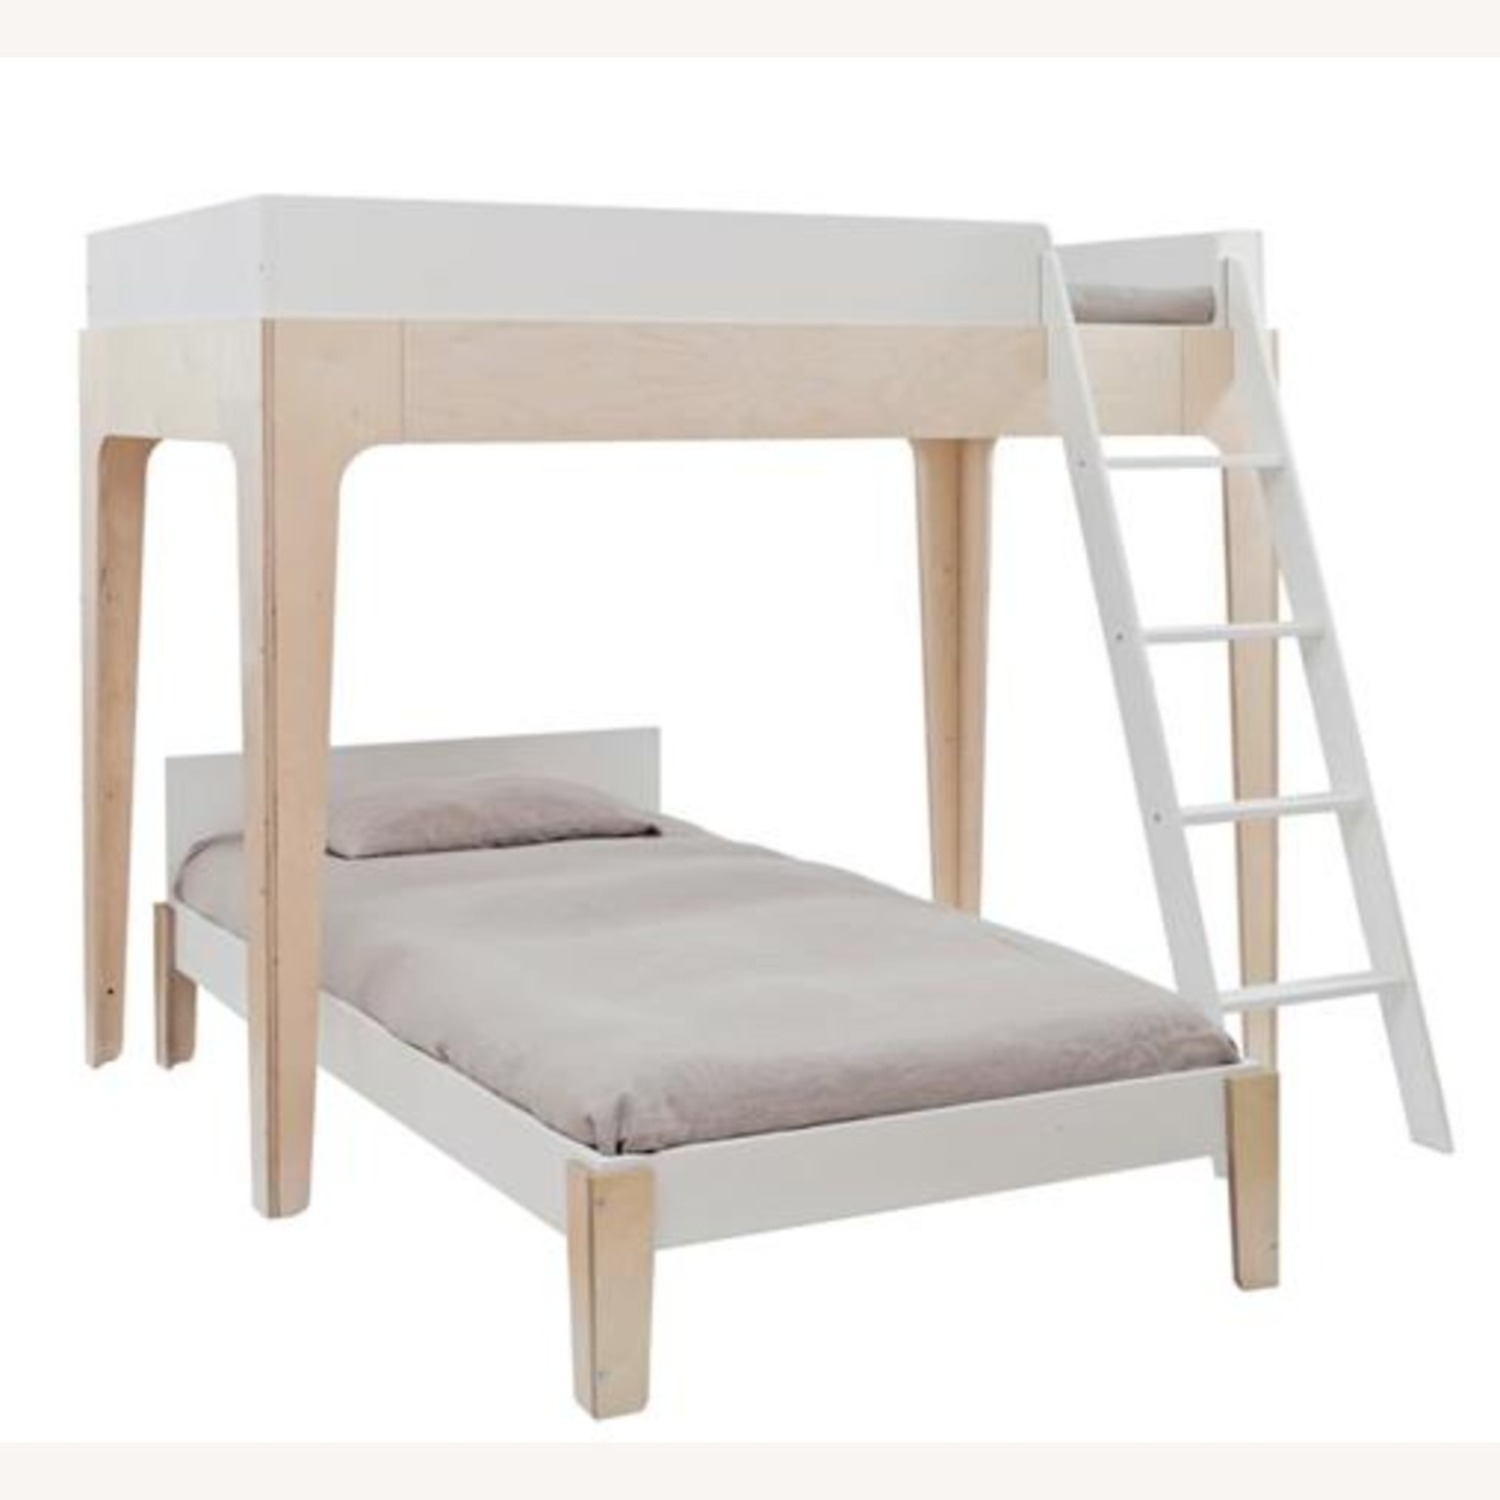 Oeuf Perch Modern Classic Birch Bunk Bed - image-3